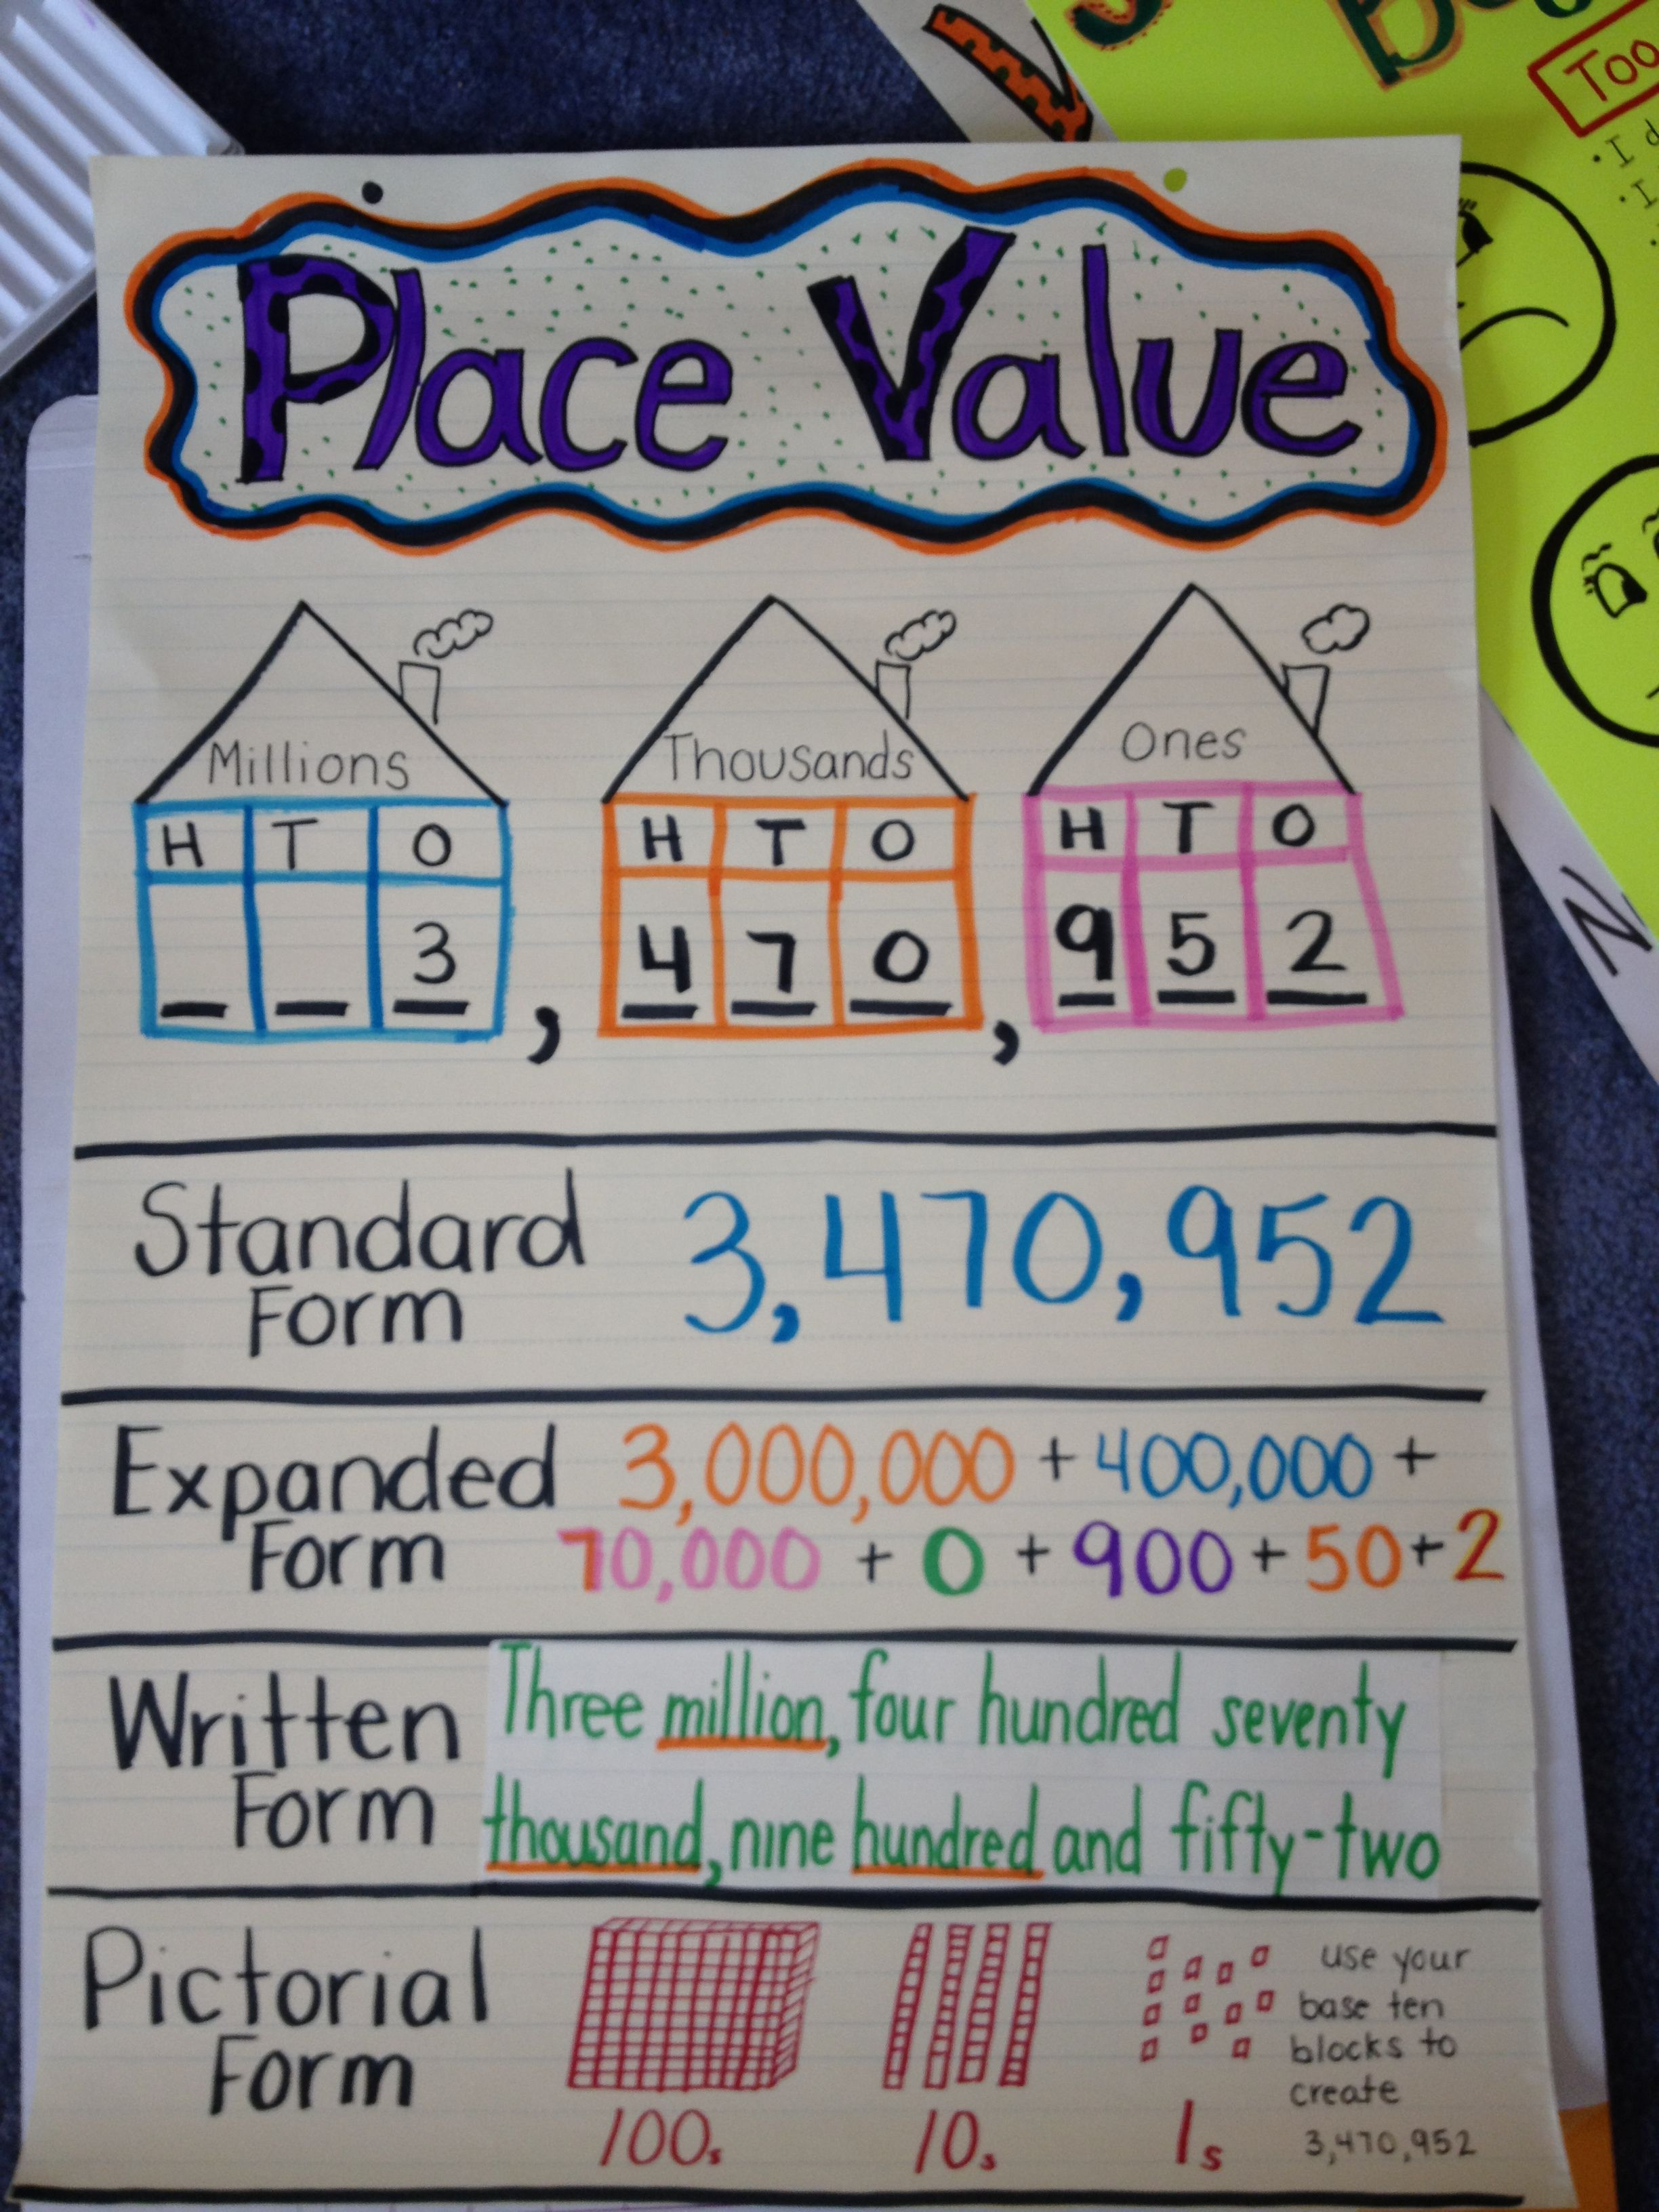 Place value anchor chart | Math | Pinterest | Mathe, Mathe ...